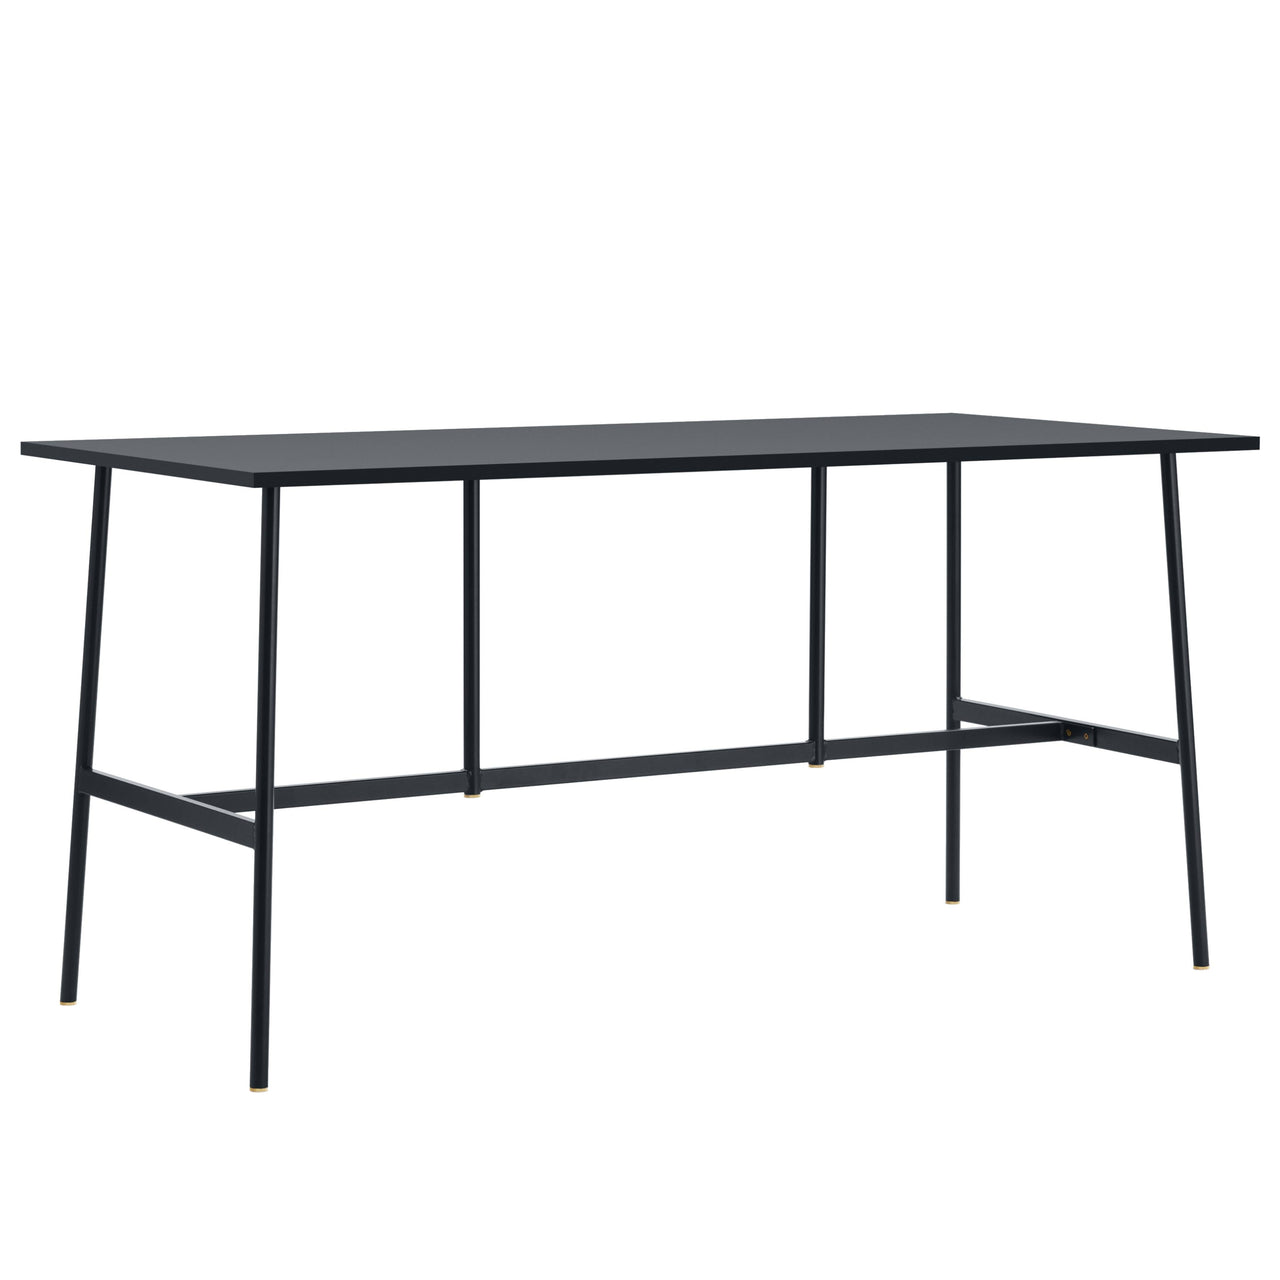 Union Bar Table: 95.5 + Small + Black